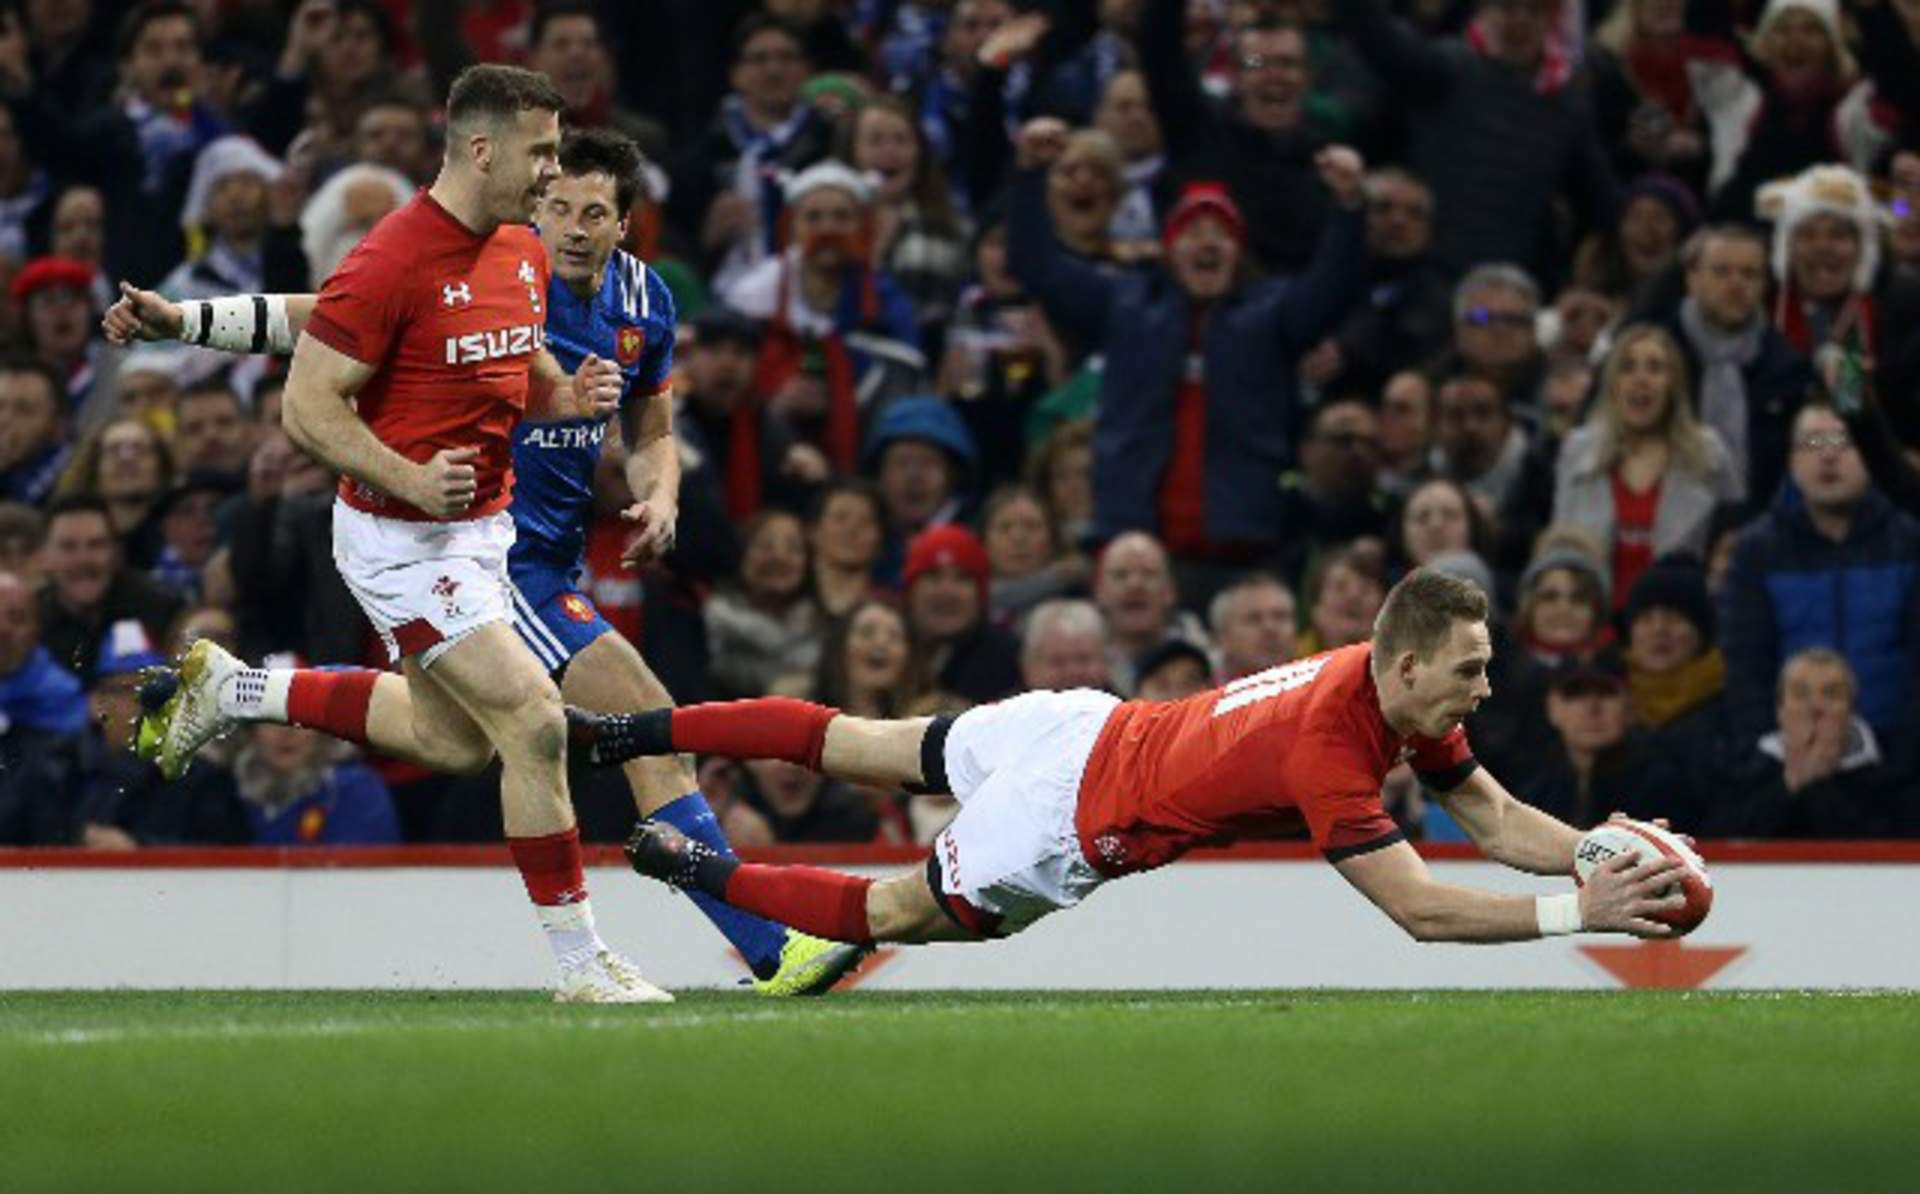 REPORT: Wales hang on to beat France and finish as runners-up